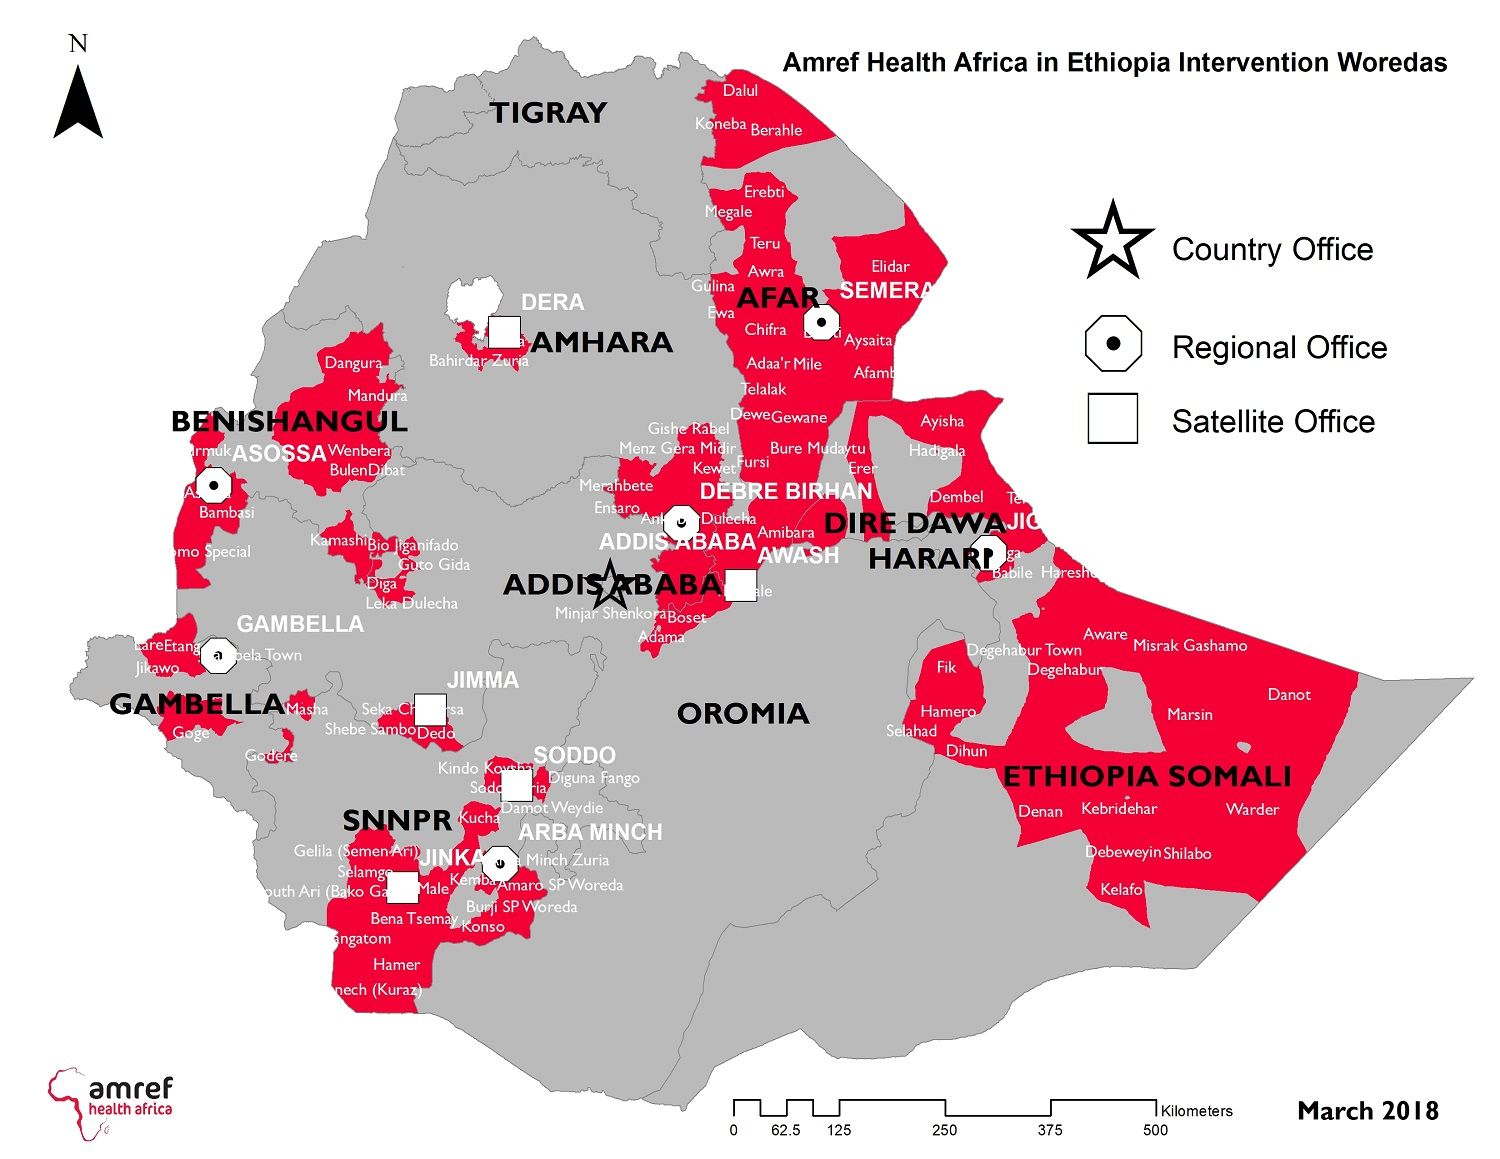 Amref Health Africa works throughout Ethiopia